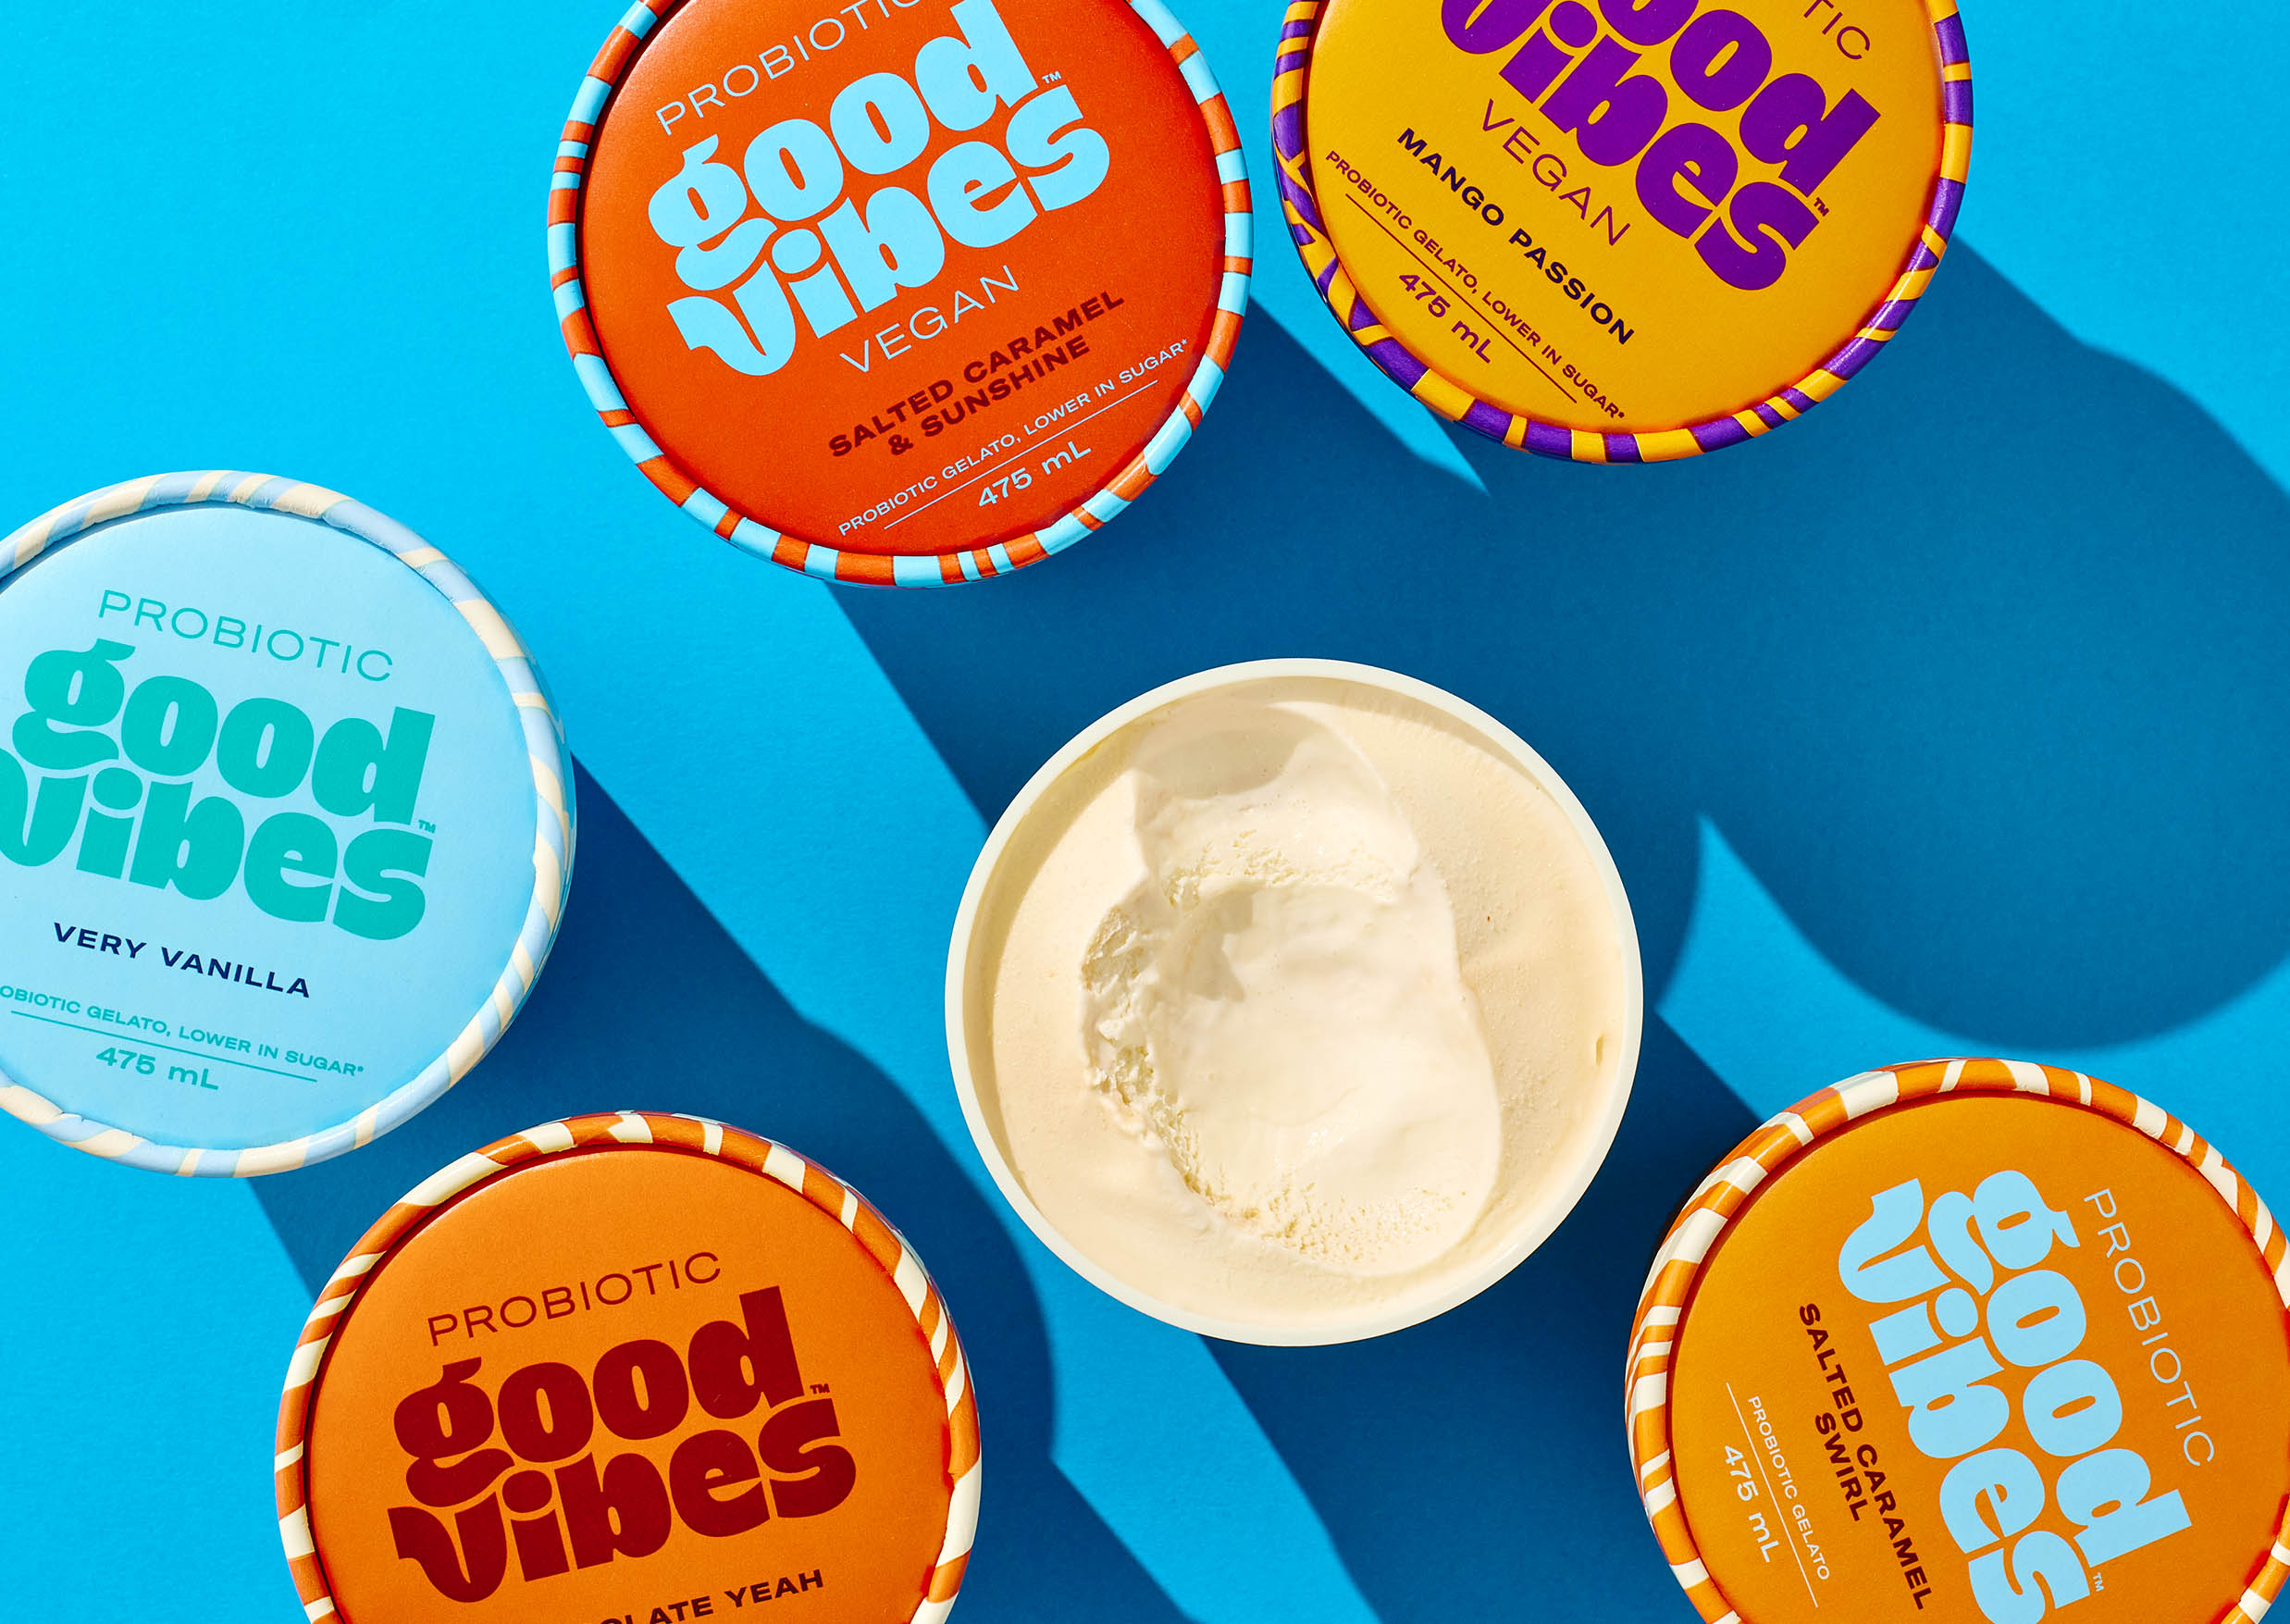 Wholesome and Organic Abstract Design for Good Vibes Probiotic Ice Cream by Marx Design